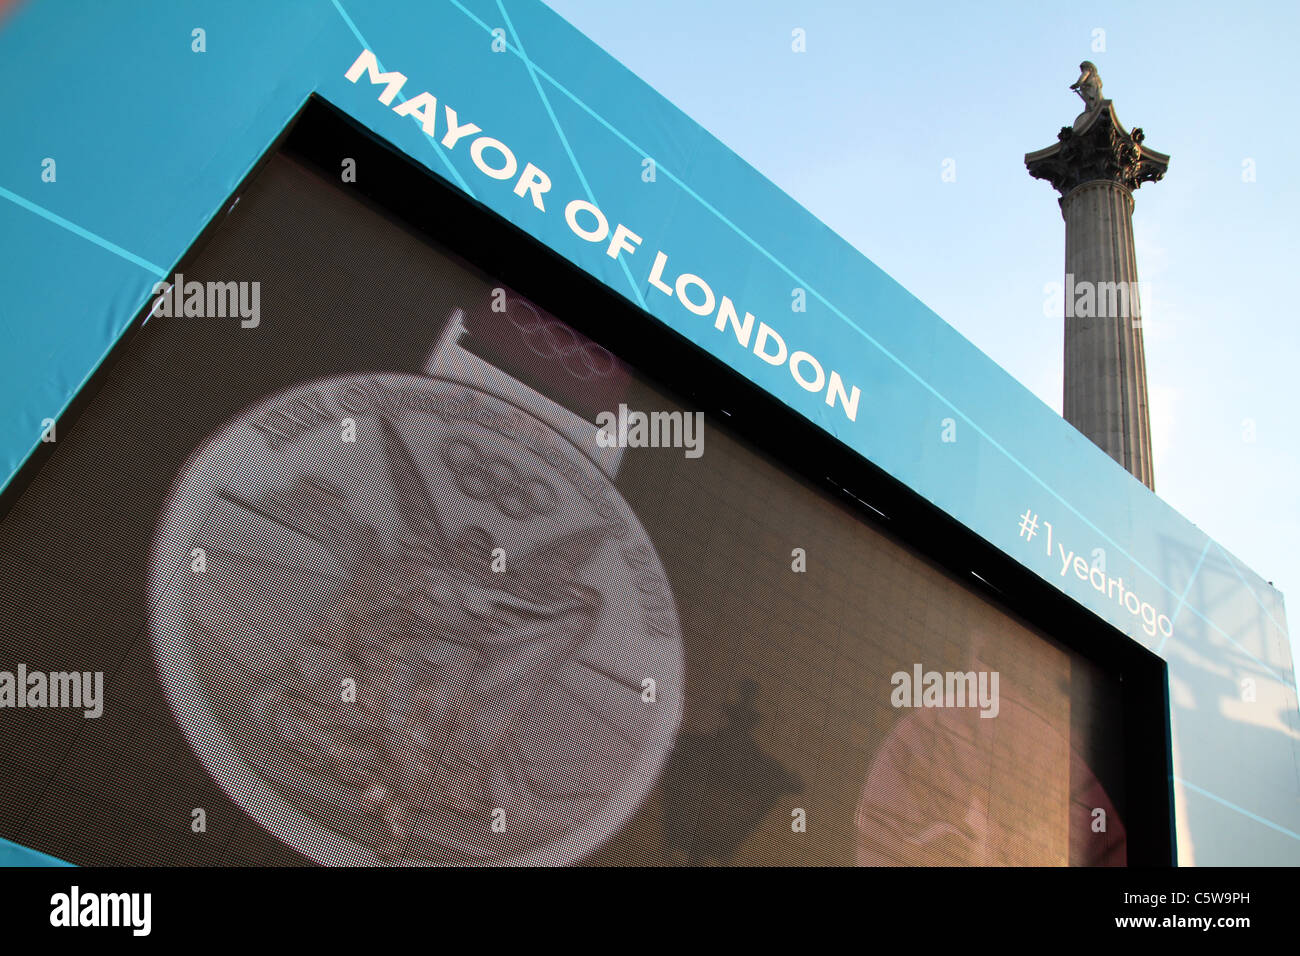 UK. London 2012 Olympics medals unveiled at 1 year to Olympic count down ceremony in Trafalgar Sq - Stock Image